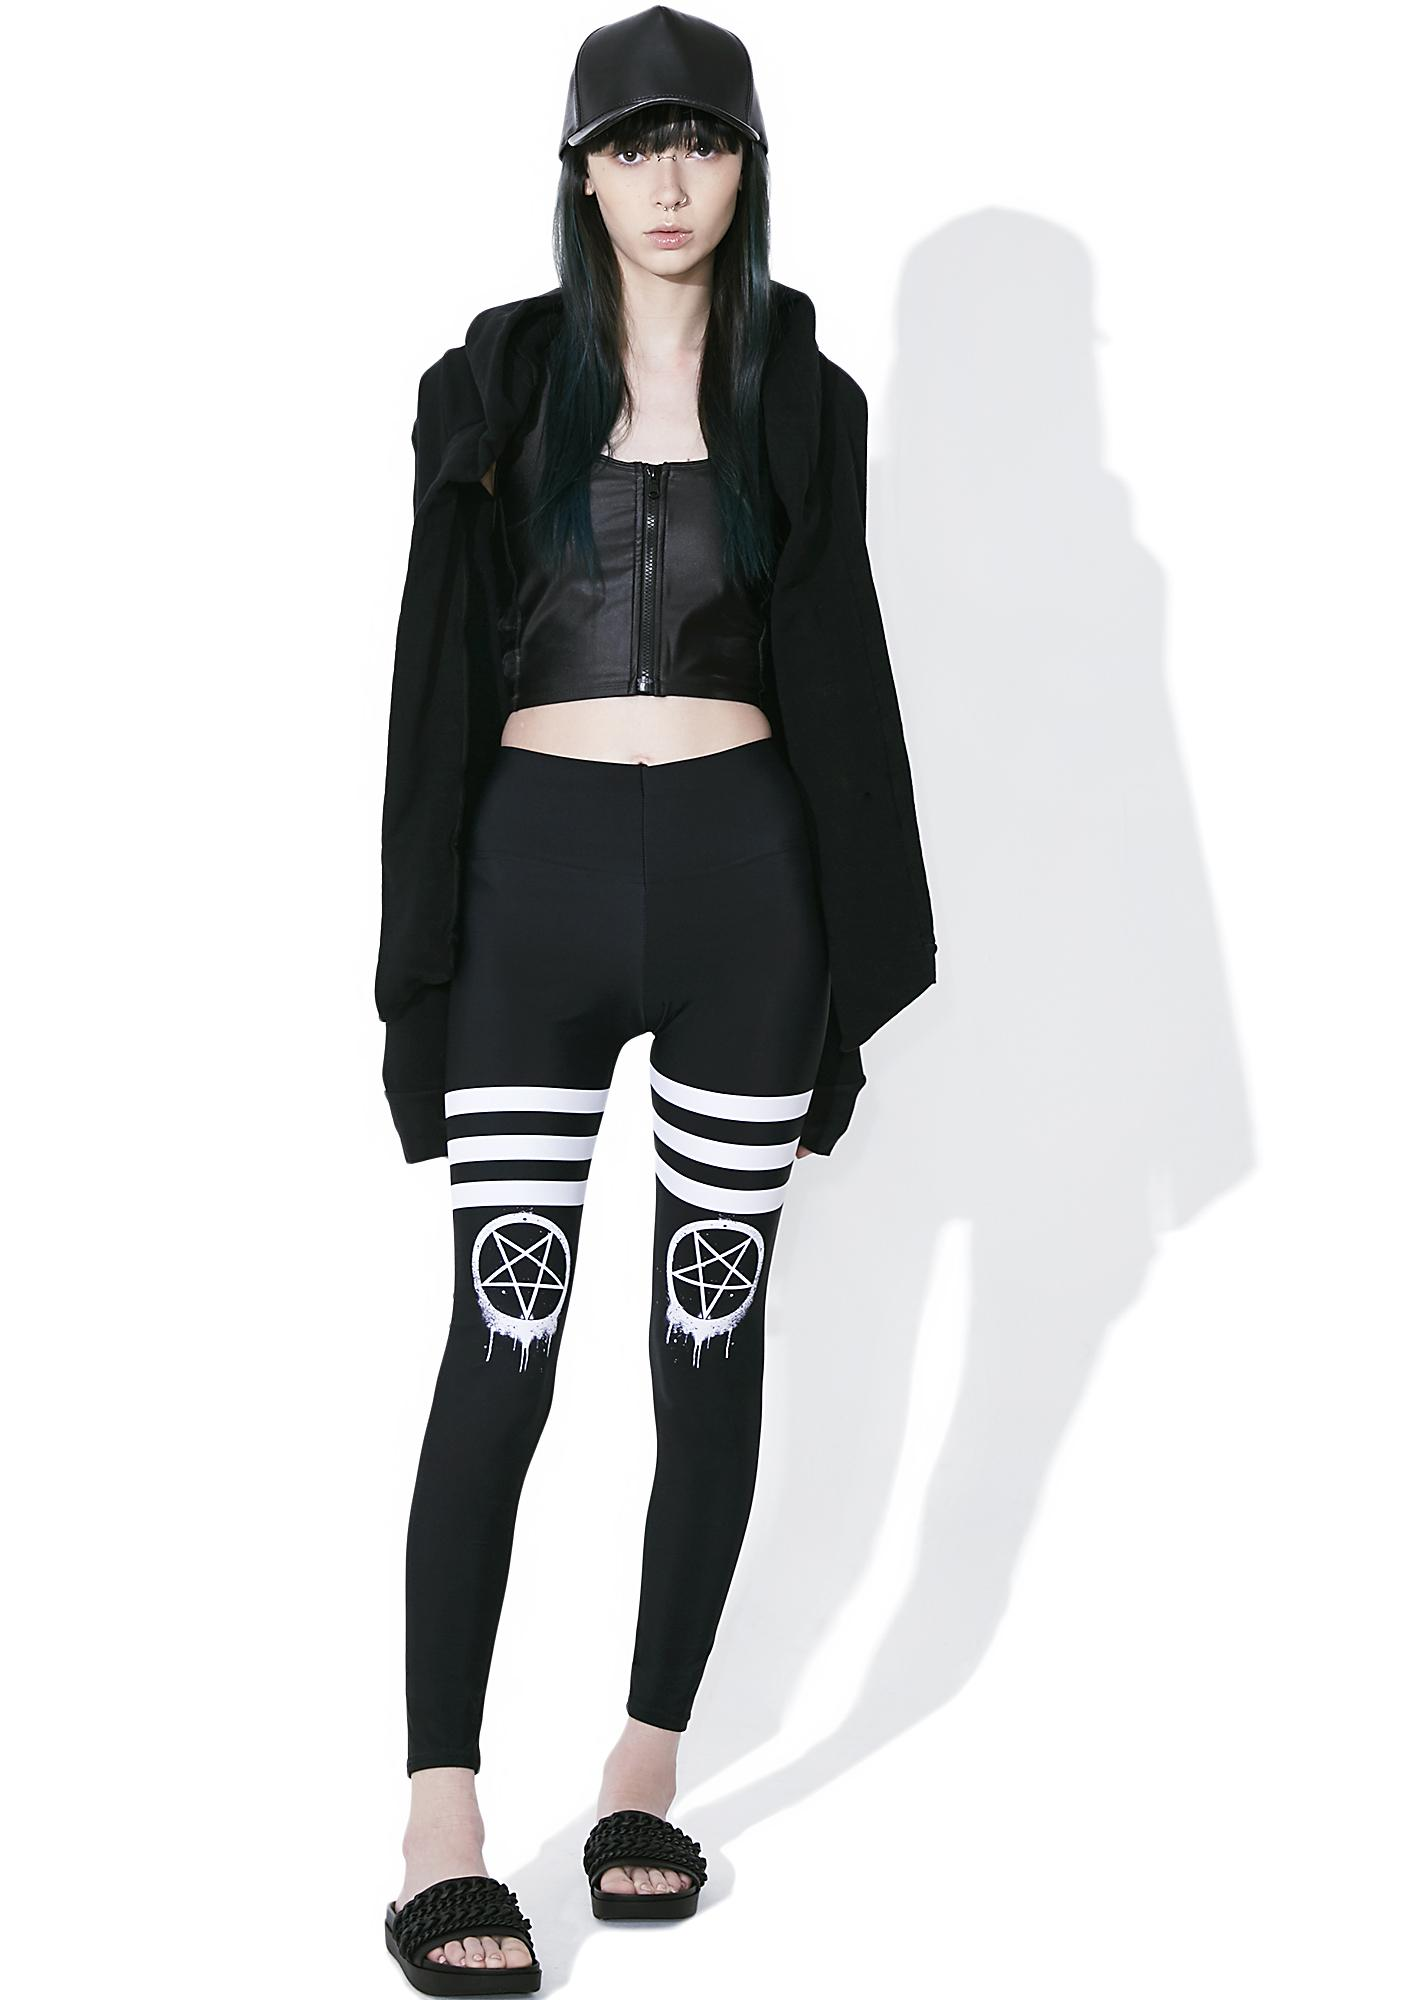 Undertaker Leggings